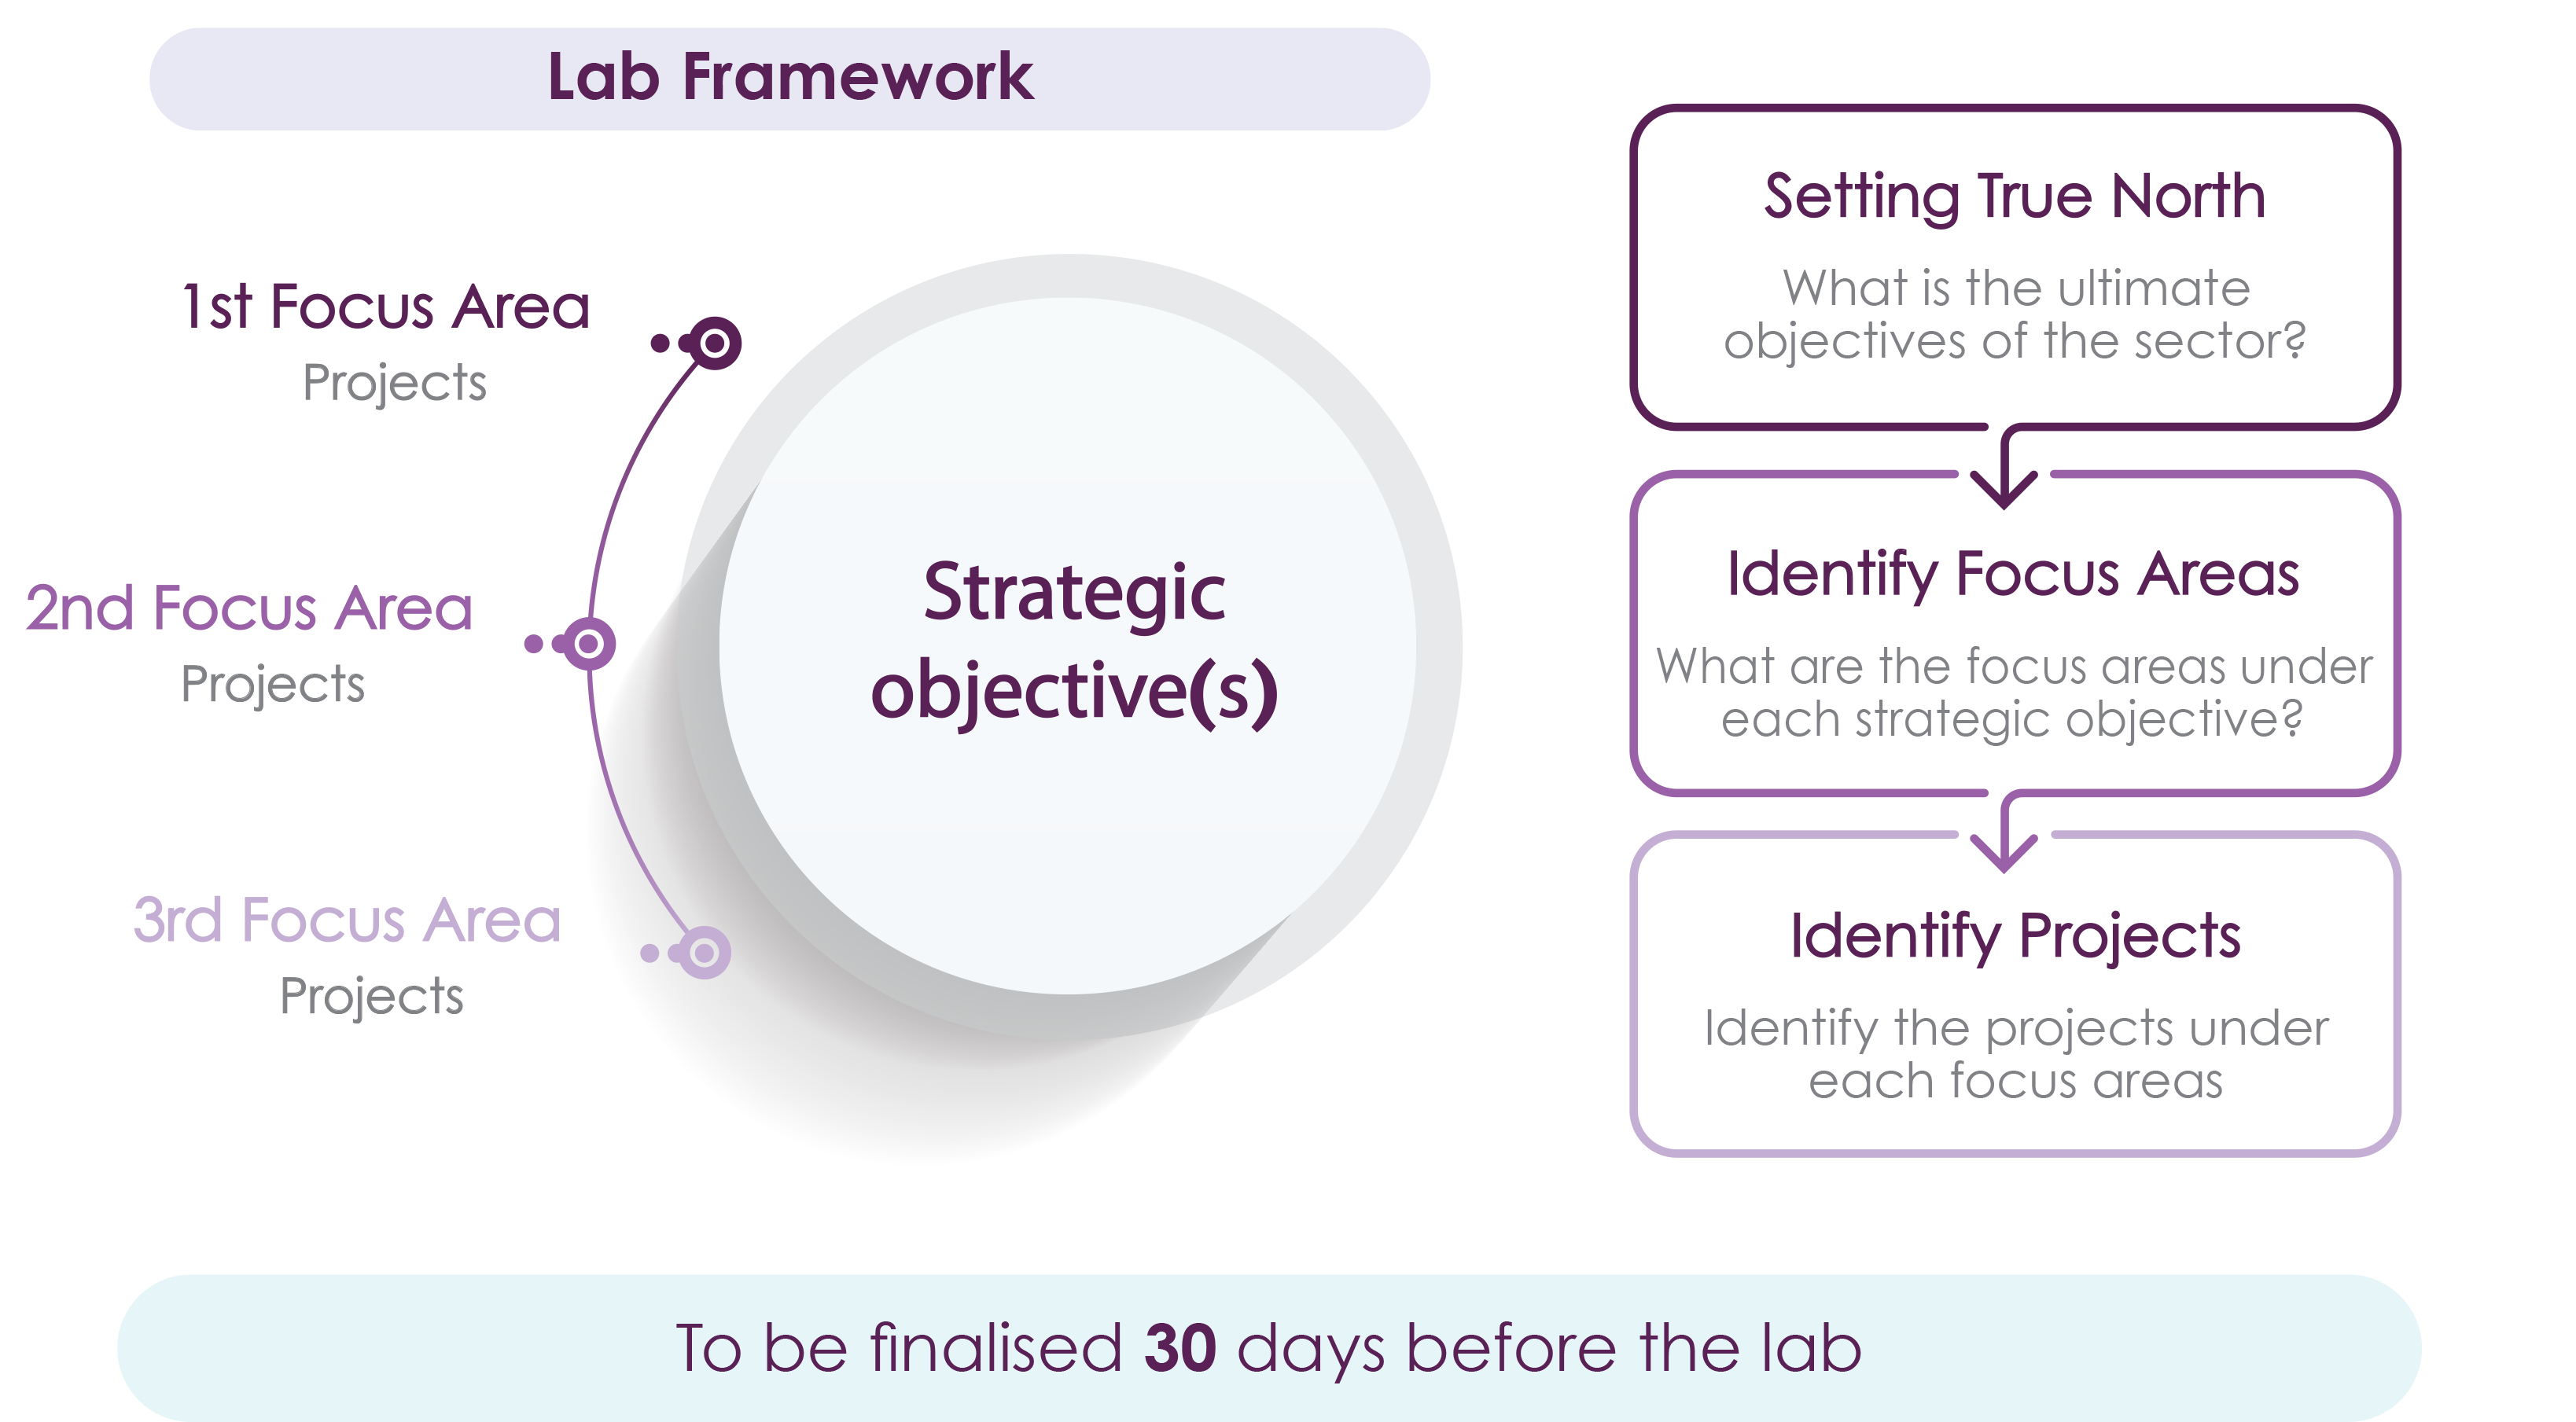 The framework for the Lab starts with setting the strategic objective and ends with identifying specific projects under each focus area